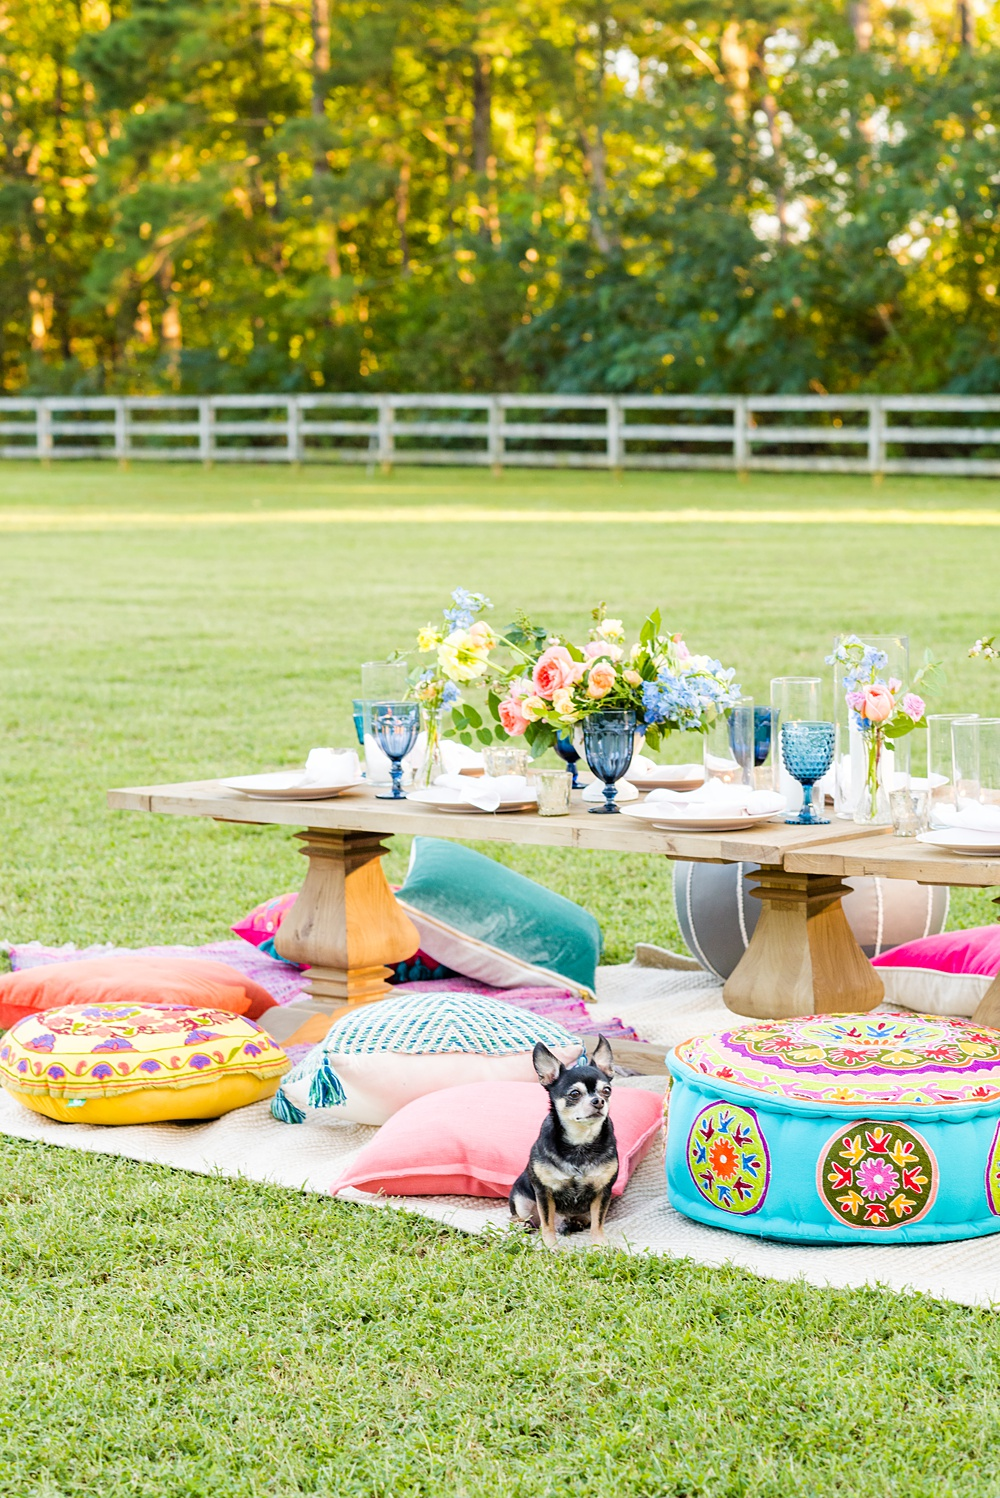 Step inside this colorful outdoor bohemian thirtieth birthday party. Full of color, lush garden flowers, and the yummiest vegan unicorn confetti cakes you ever did find! Click through for the details. Mikkel Paige Photography #gardenparty #birthdayparty #bohemianparty #styledshoot #backyardparty #flowers | glitterinc.com | @glitterinc